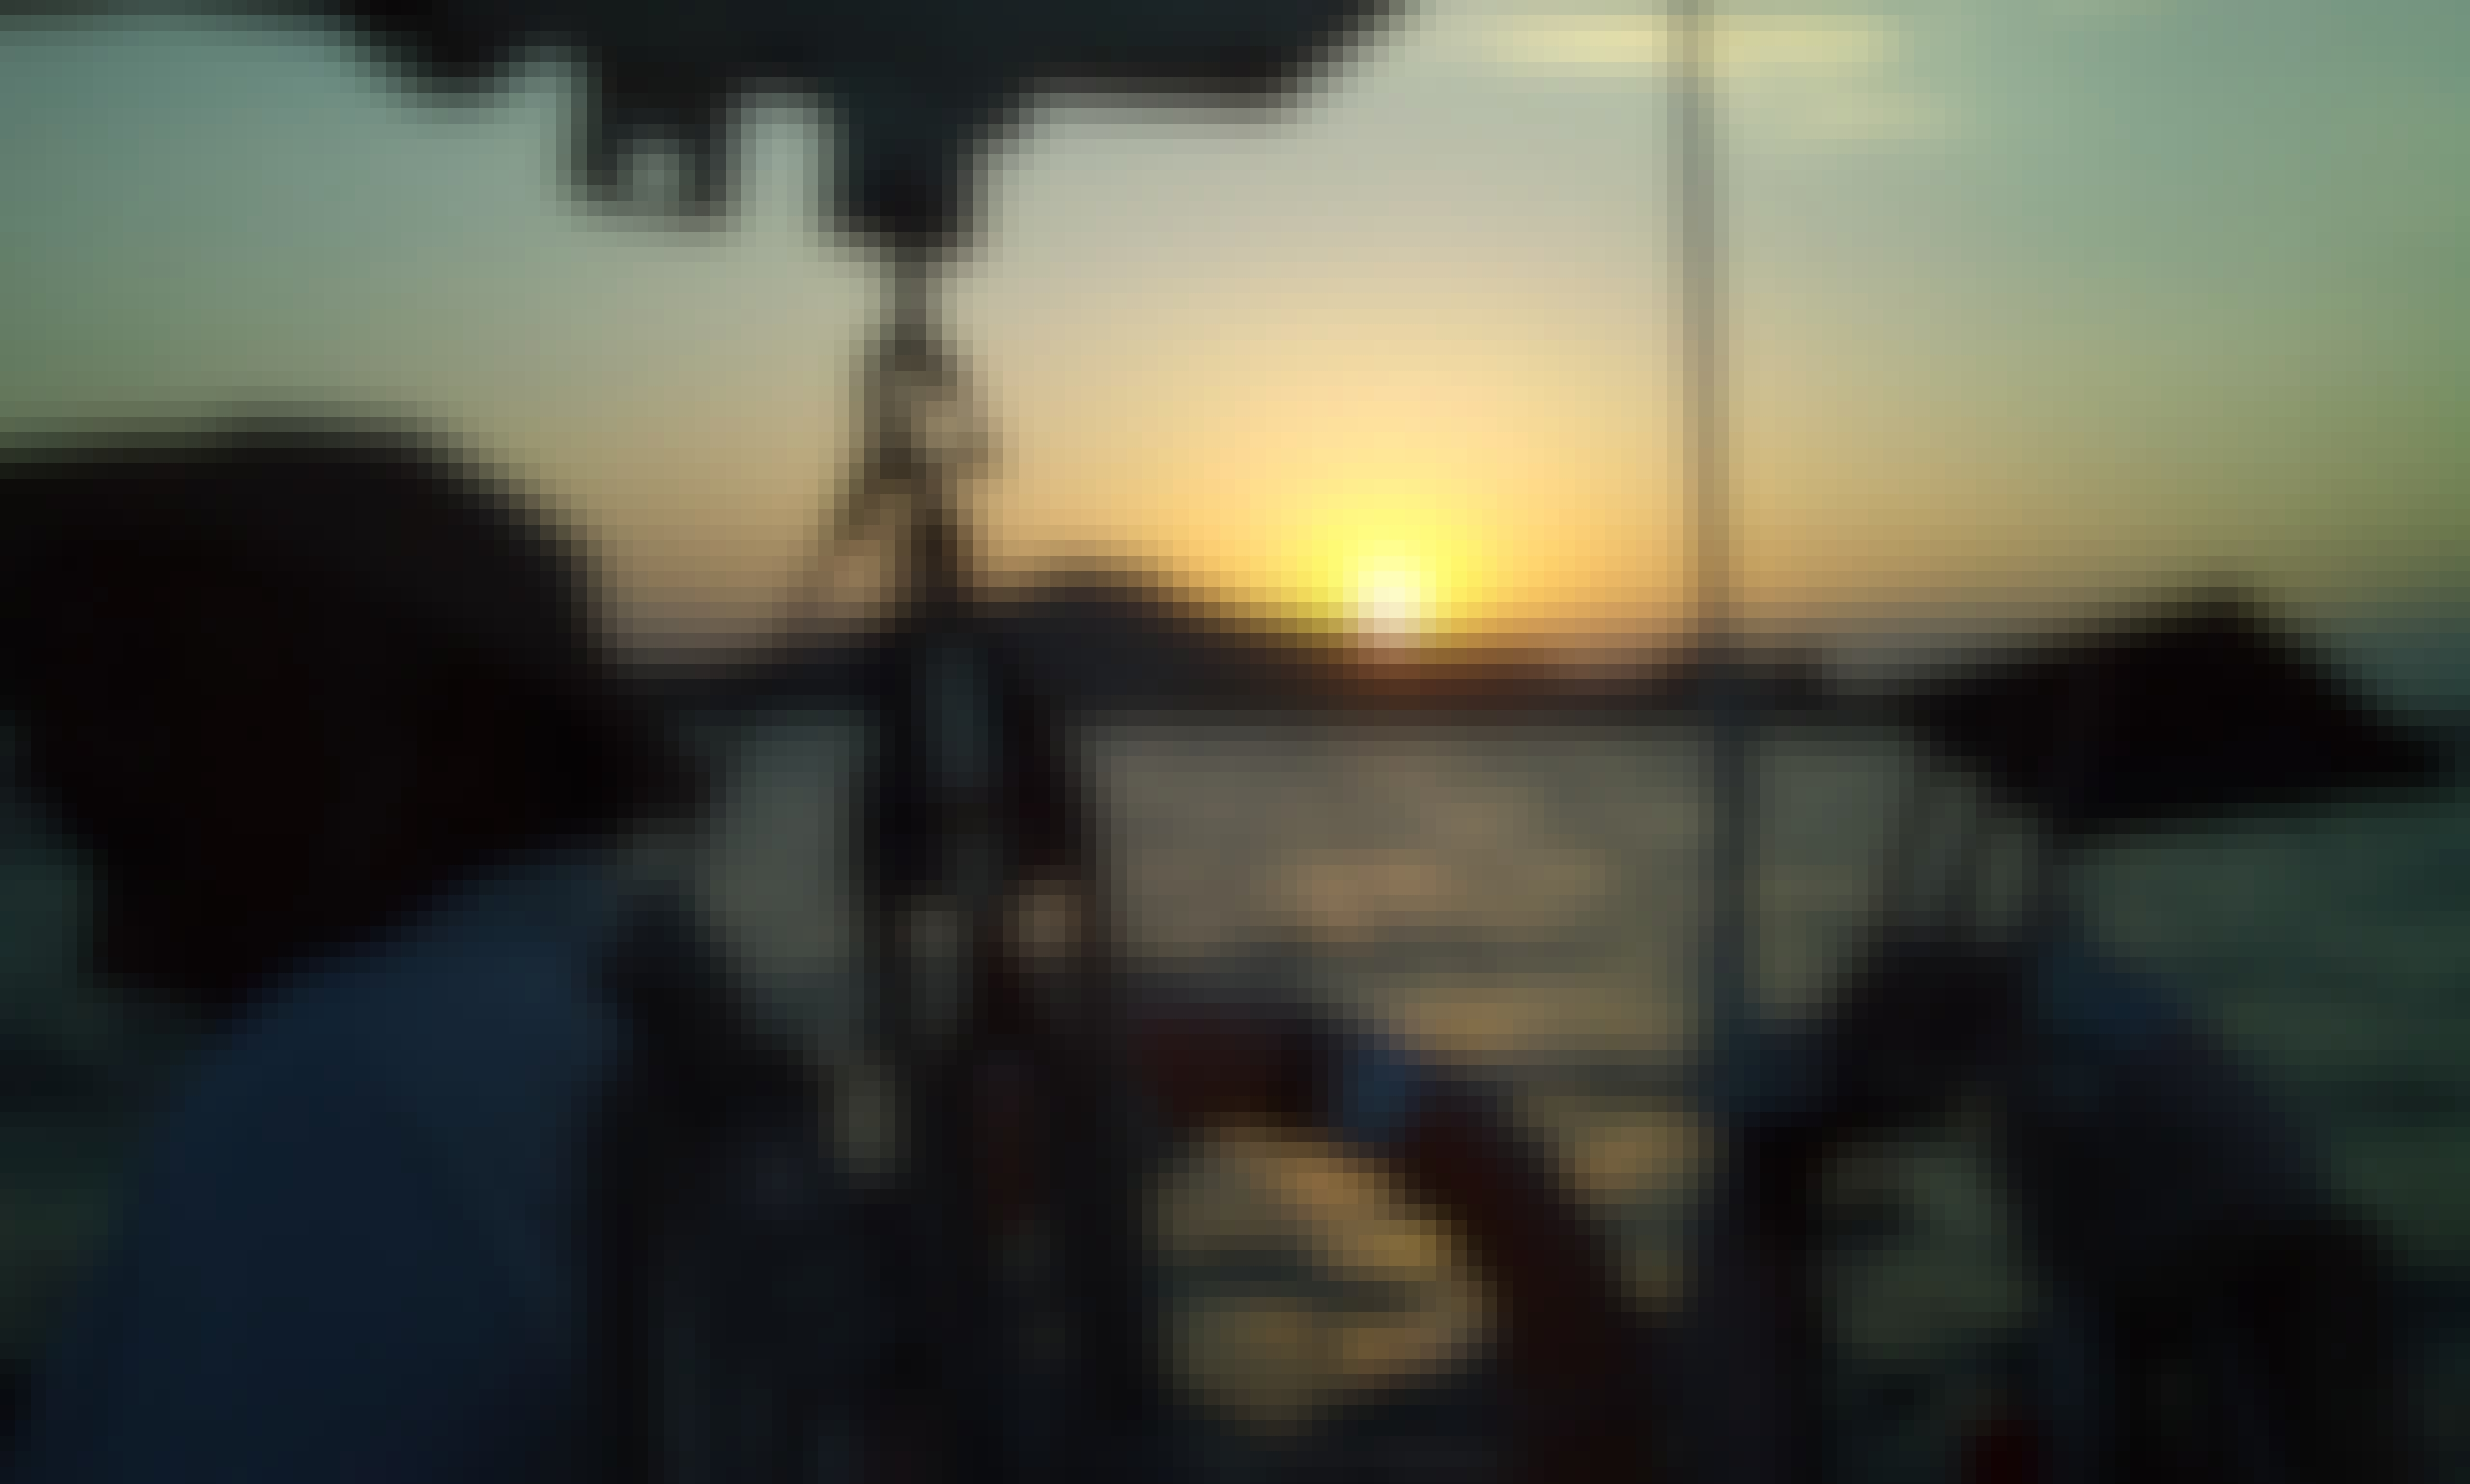 Townsville sunset sail 7 days a week